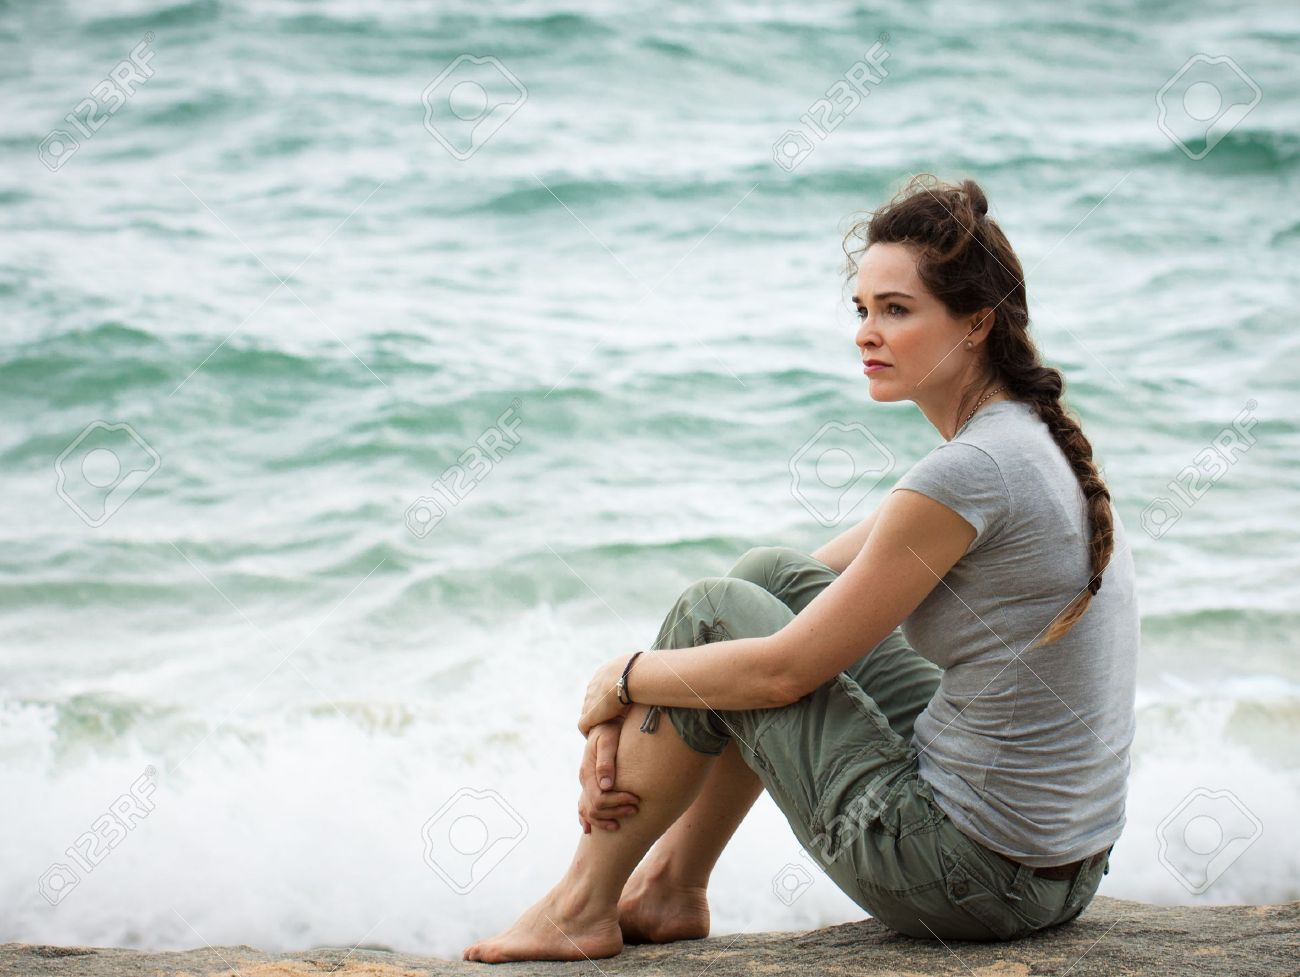 A sad and pensive woman sitting by the ocean deep in thought Stock Photo - 19588355